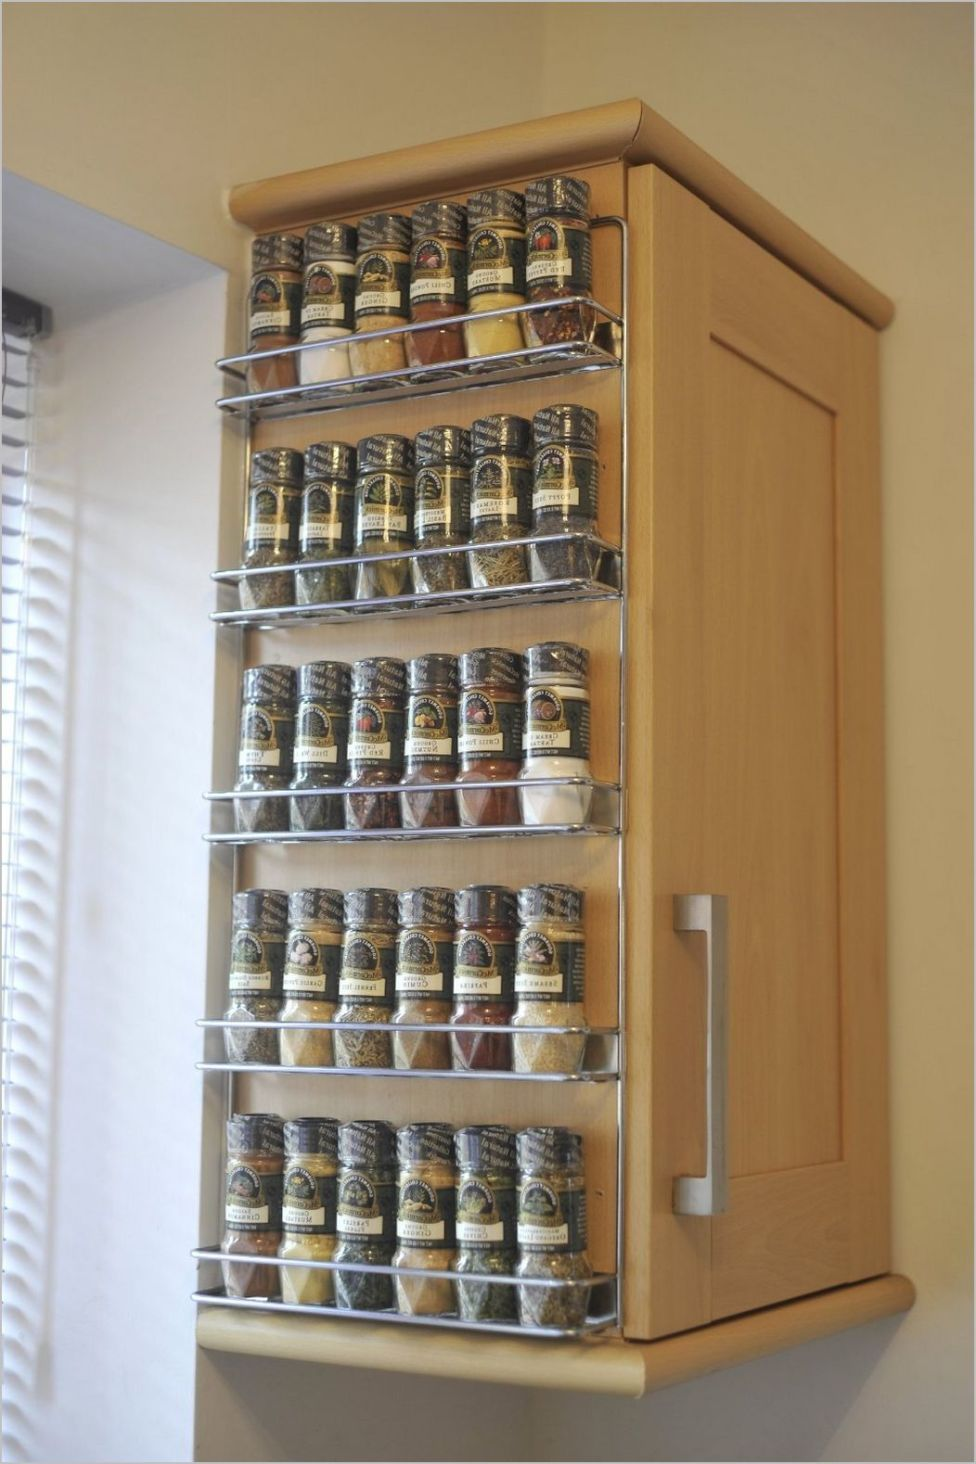 wall spice rack ideas home interior design styles kitchen remodel in 2019 kitchen spice. Black Bedroom Furniture Sets. Home Design Ideas